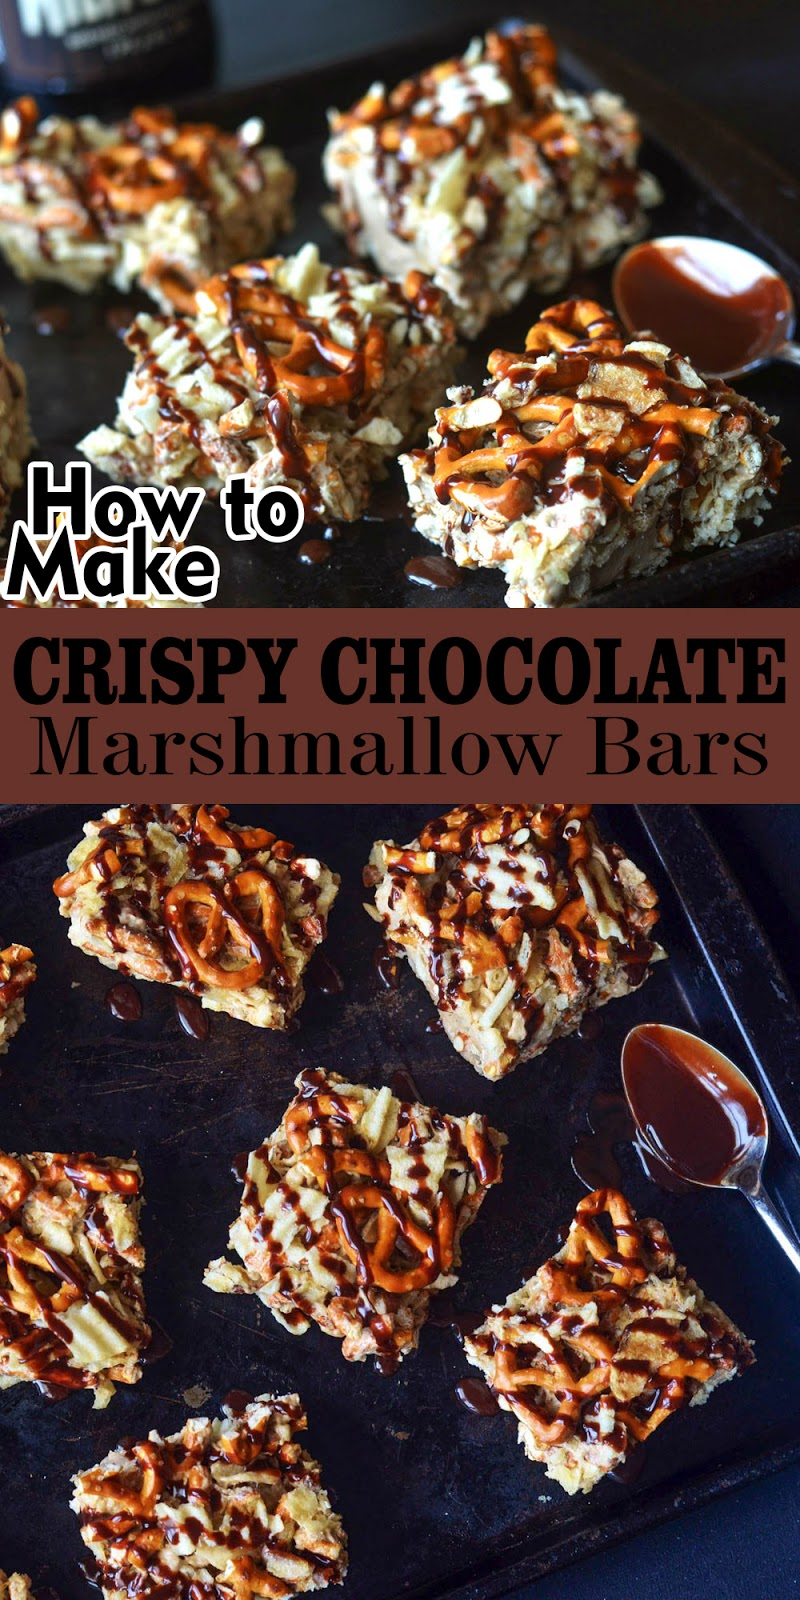 CRISPY CHOCOLATE-MARSHMALLOW BARS